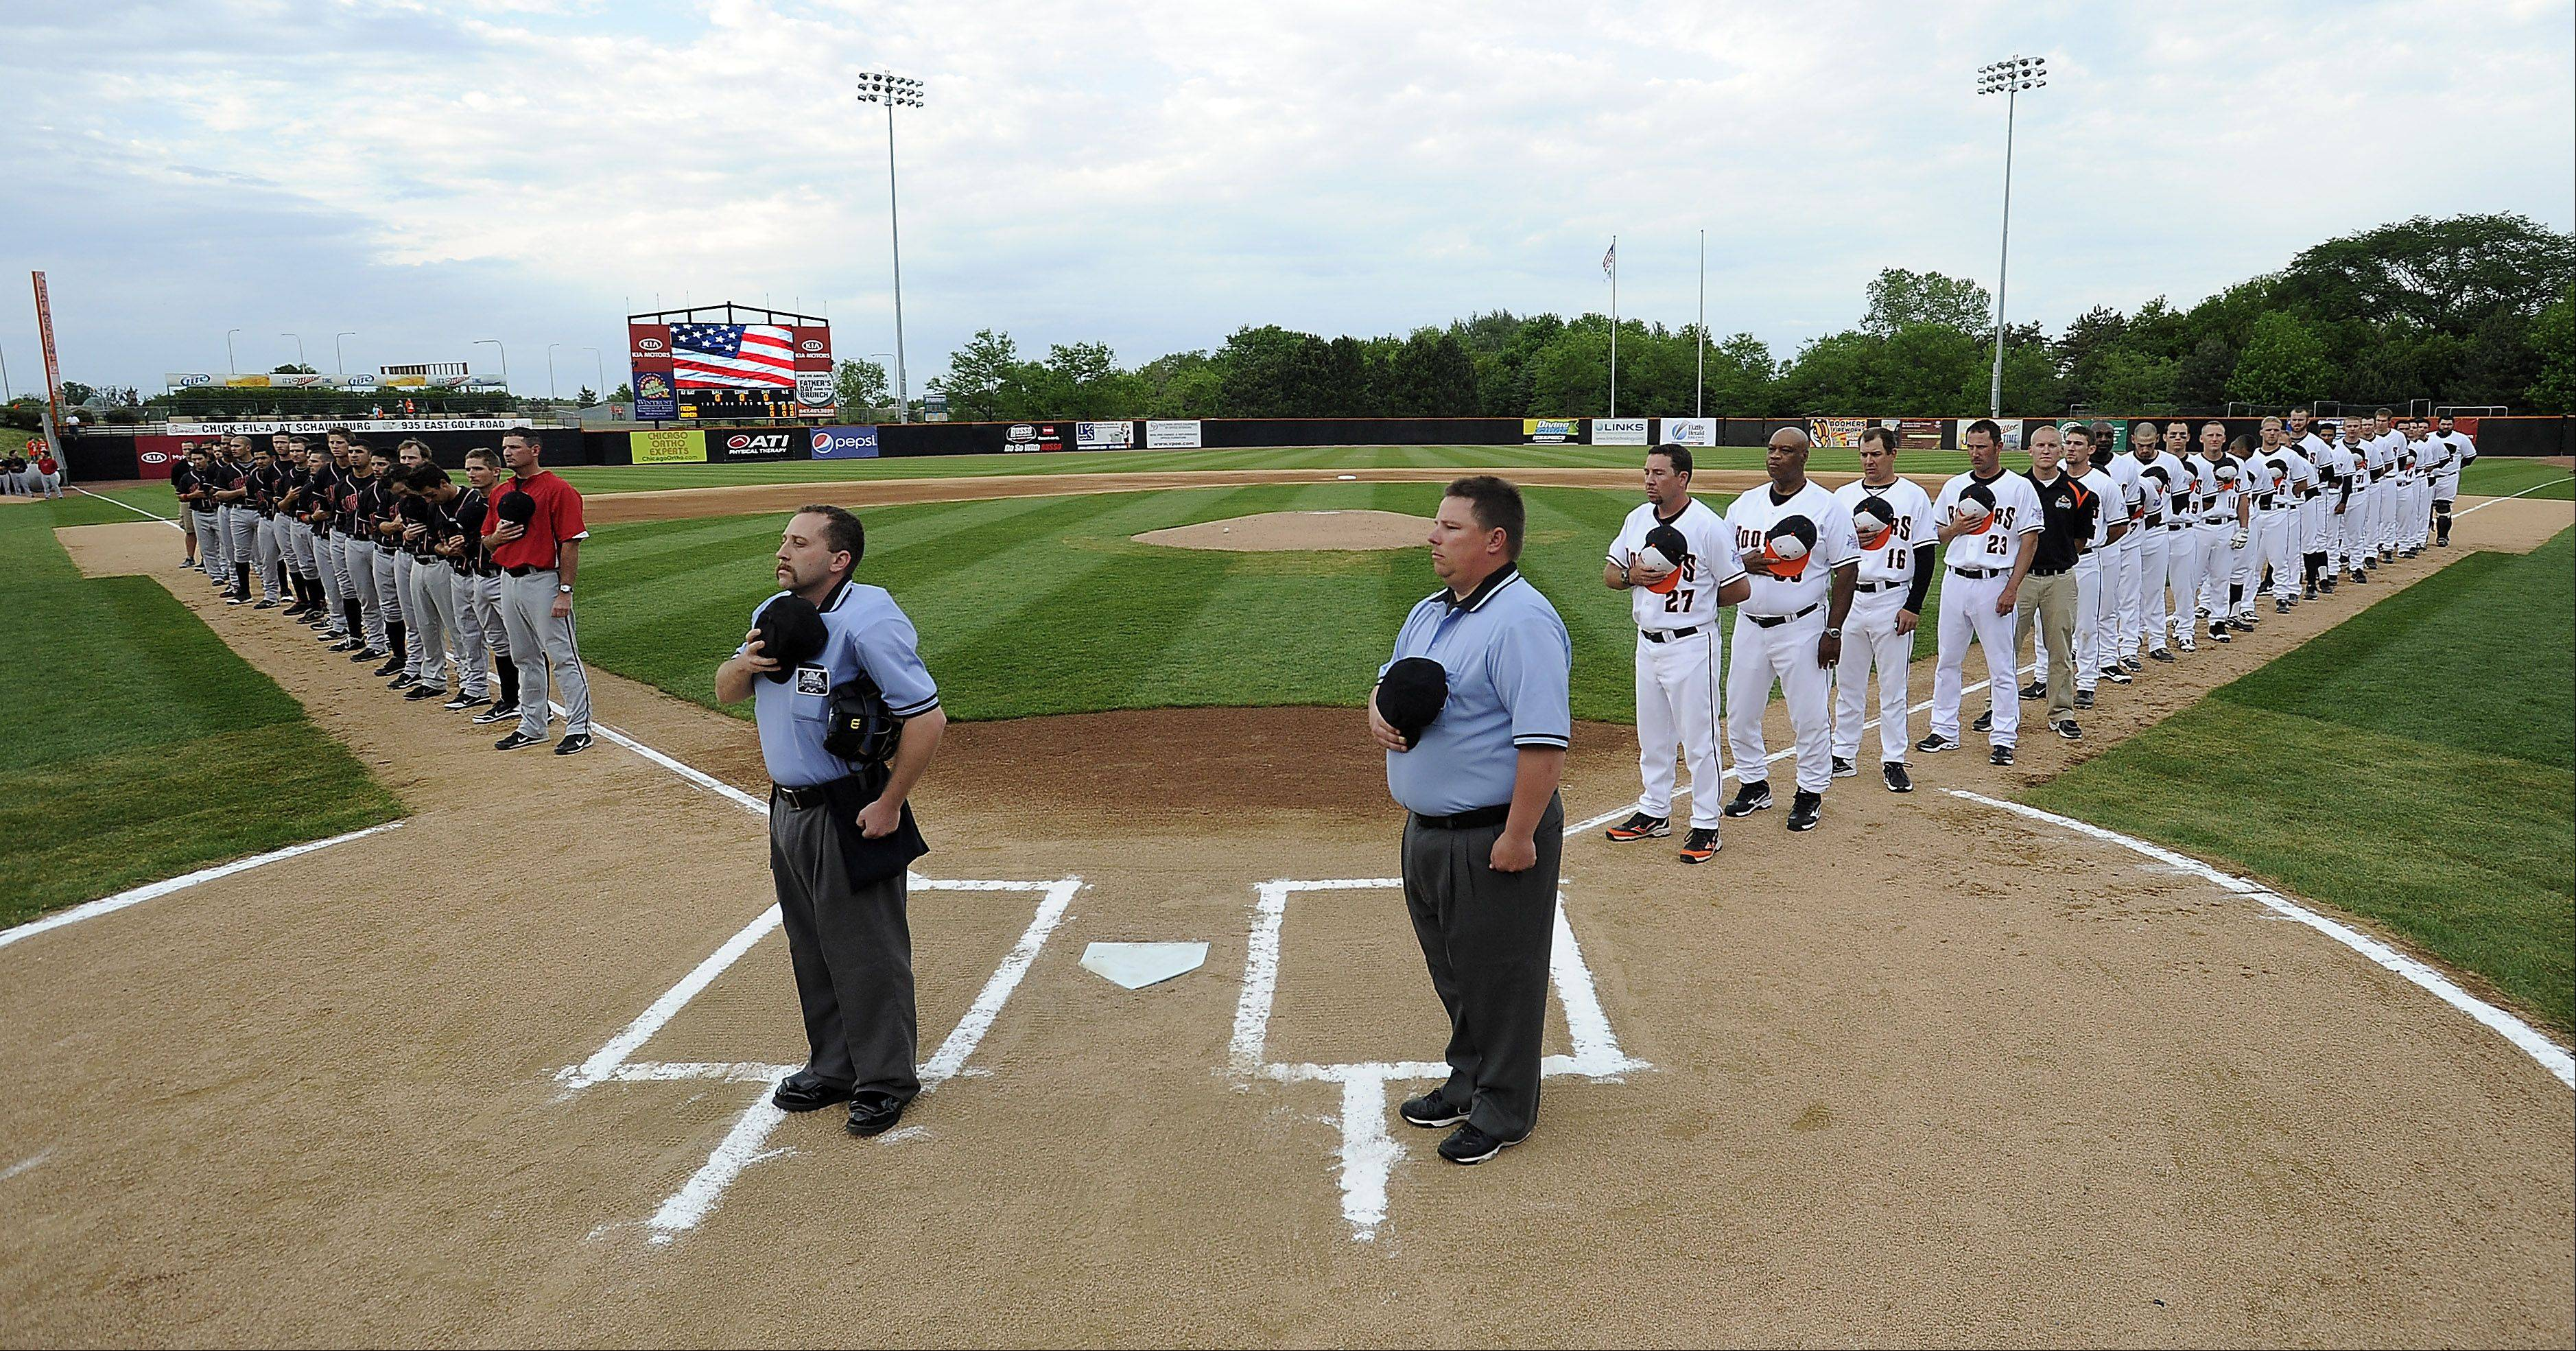 Images: Schaumburg Boomers Opening Night